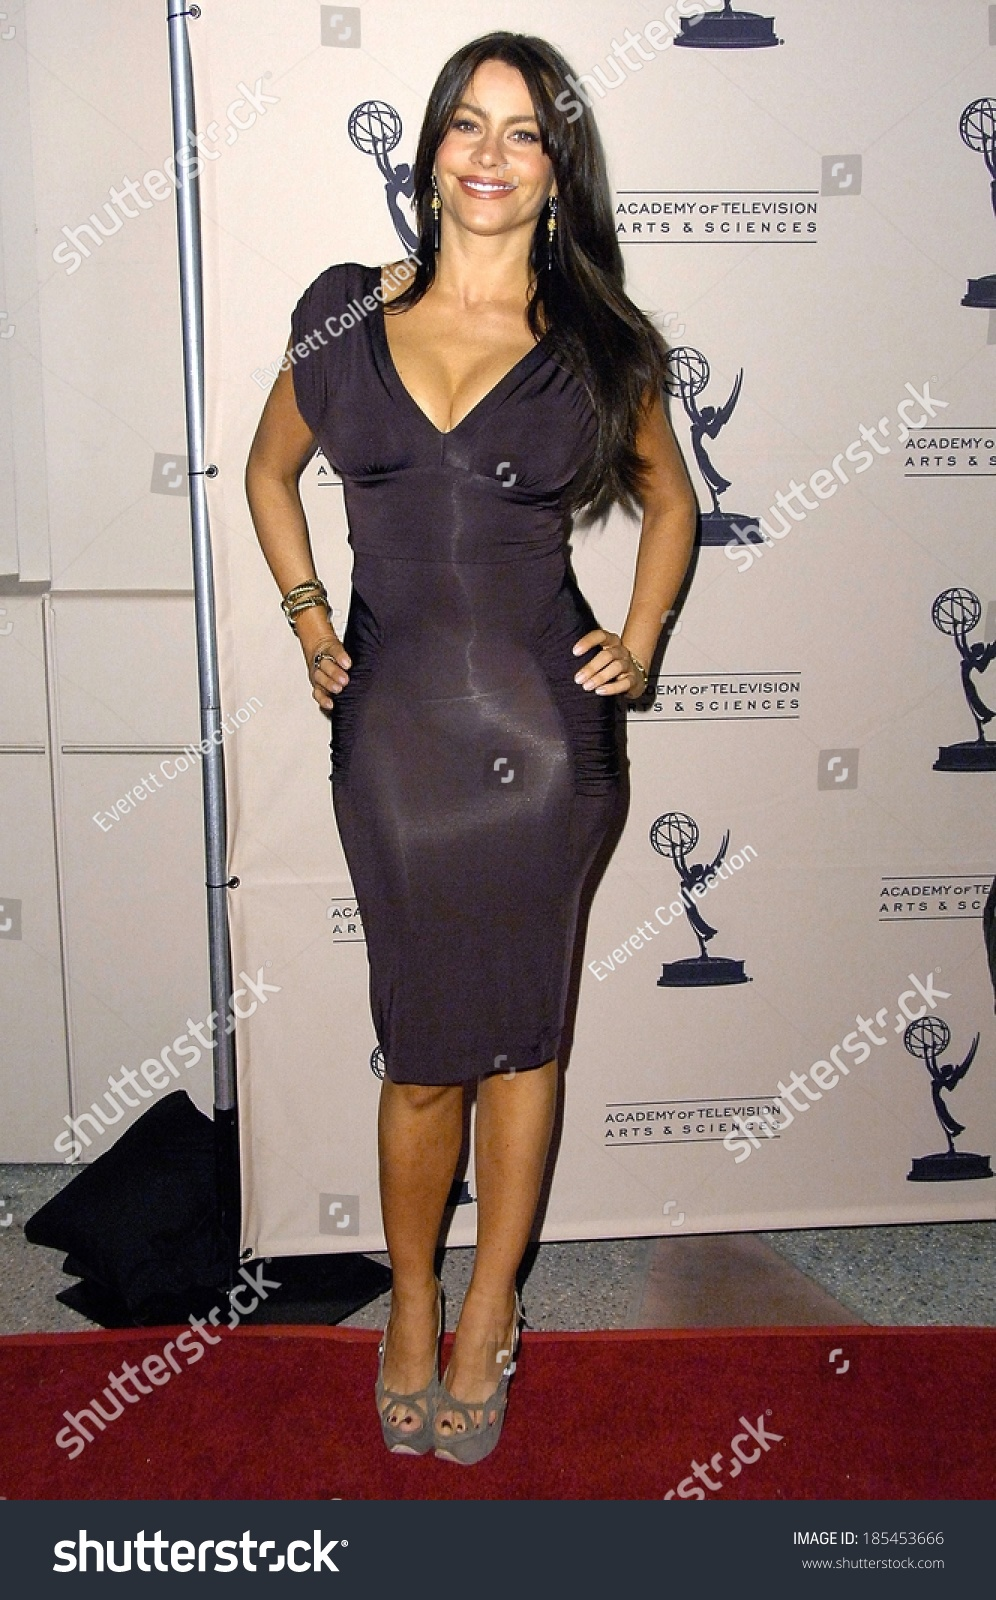 Image Result For Television Academy Official Site